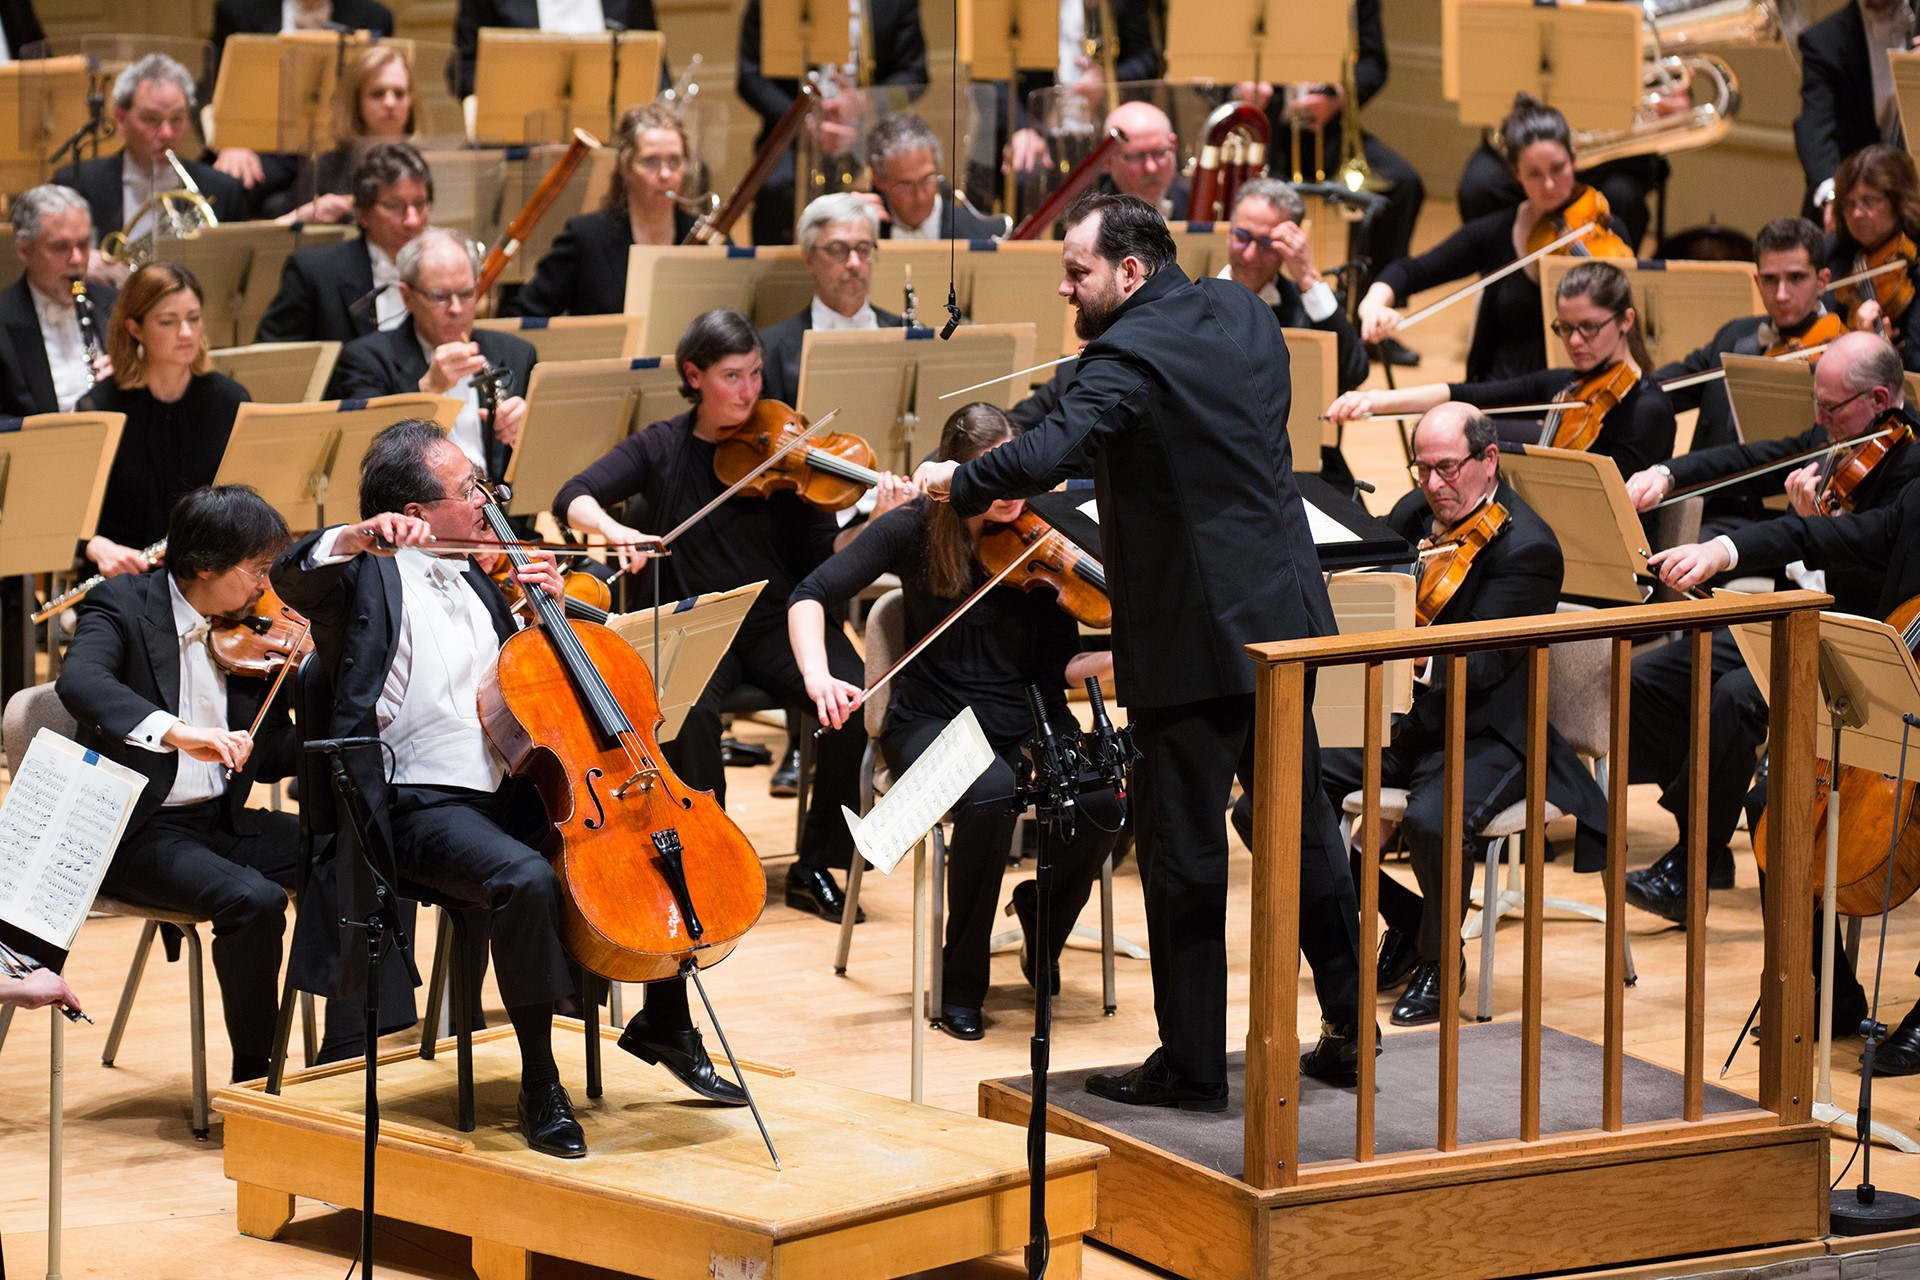 The Boston Symphony Orchestra, Andris Nelsons conducting, with soloists Yo-Yo Ma (left) and Steven Ansell (right of Nelsons), Thursday, March 29 at Symphony Hall. Robert Torres photograph